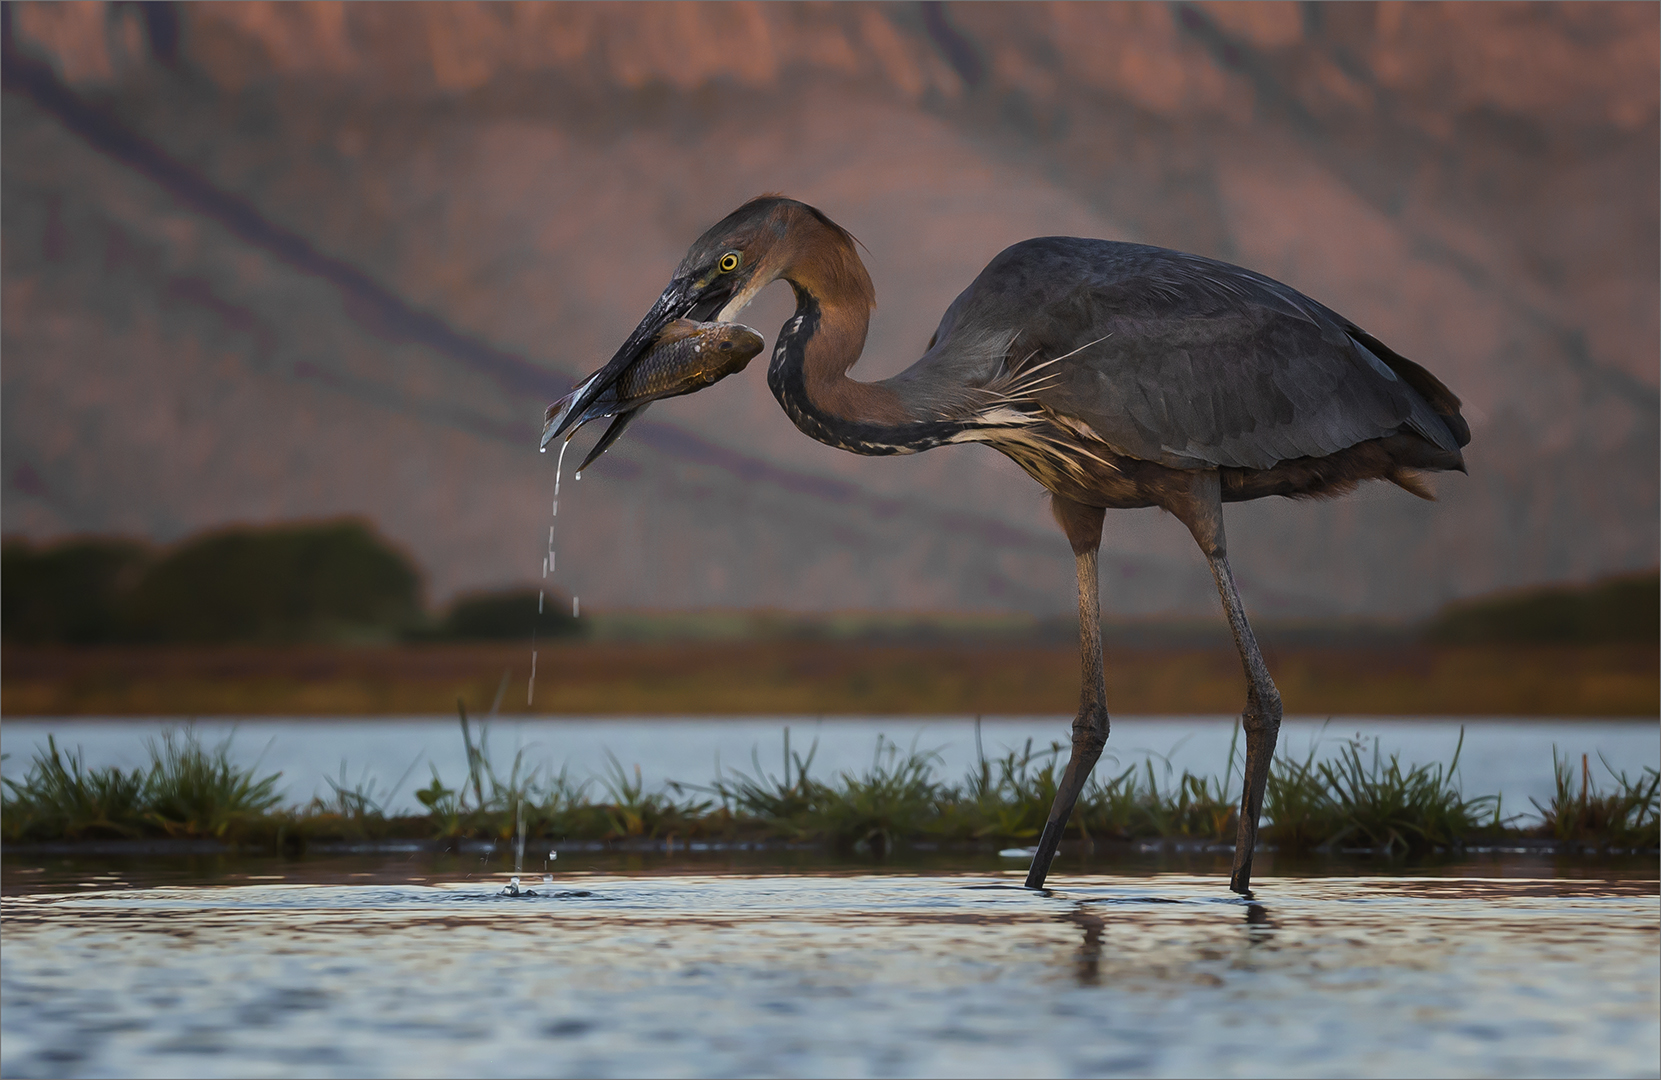 O-002-1639614-Goliath Heron with catch -